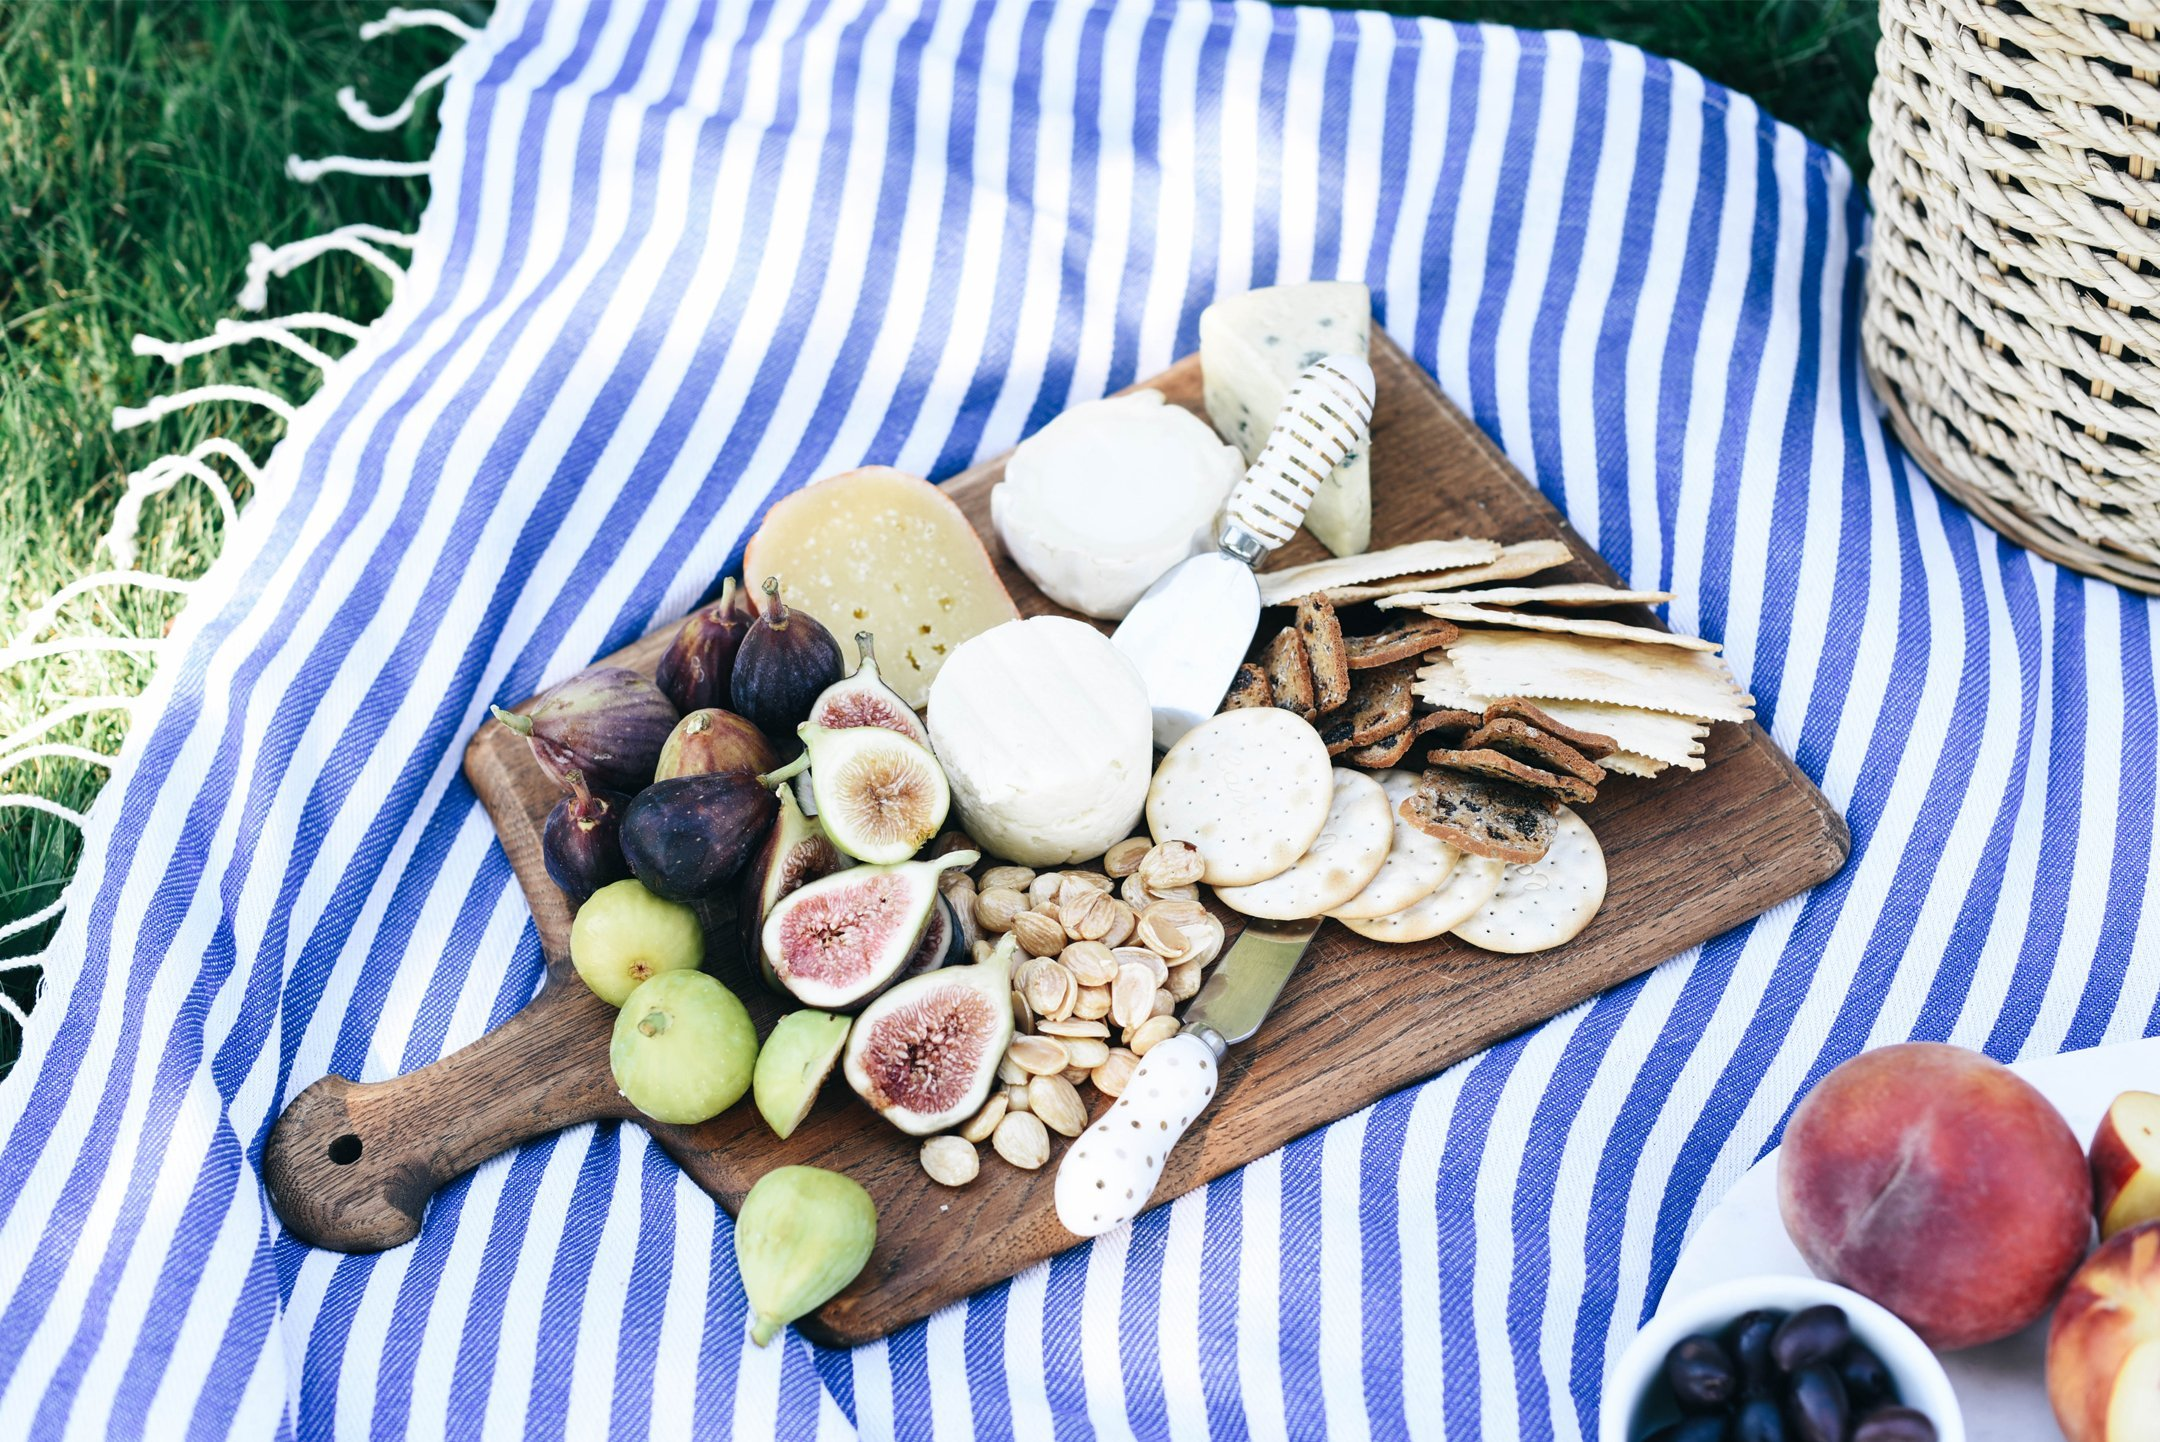 Picnic cheese board